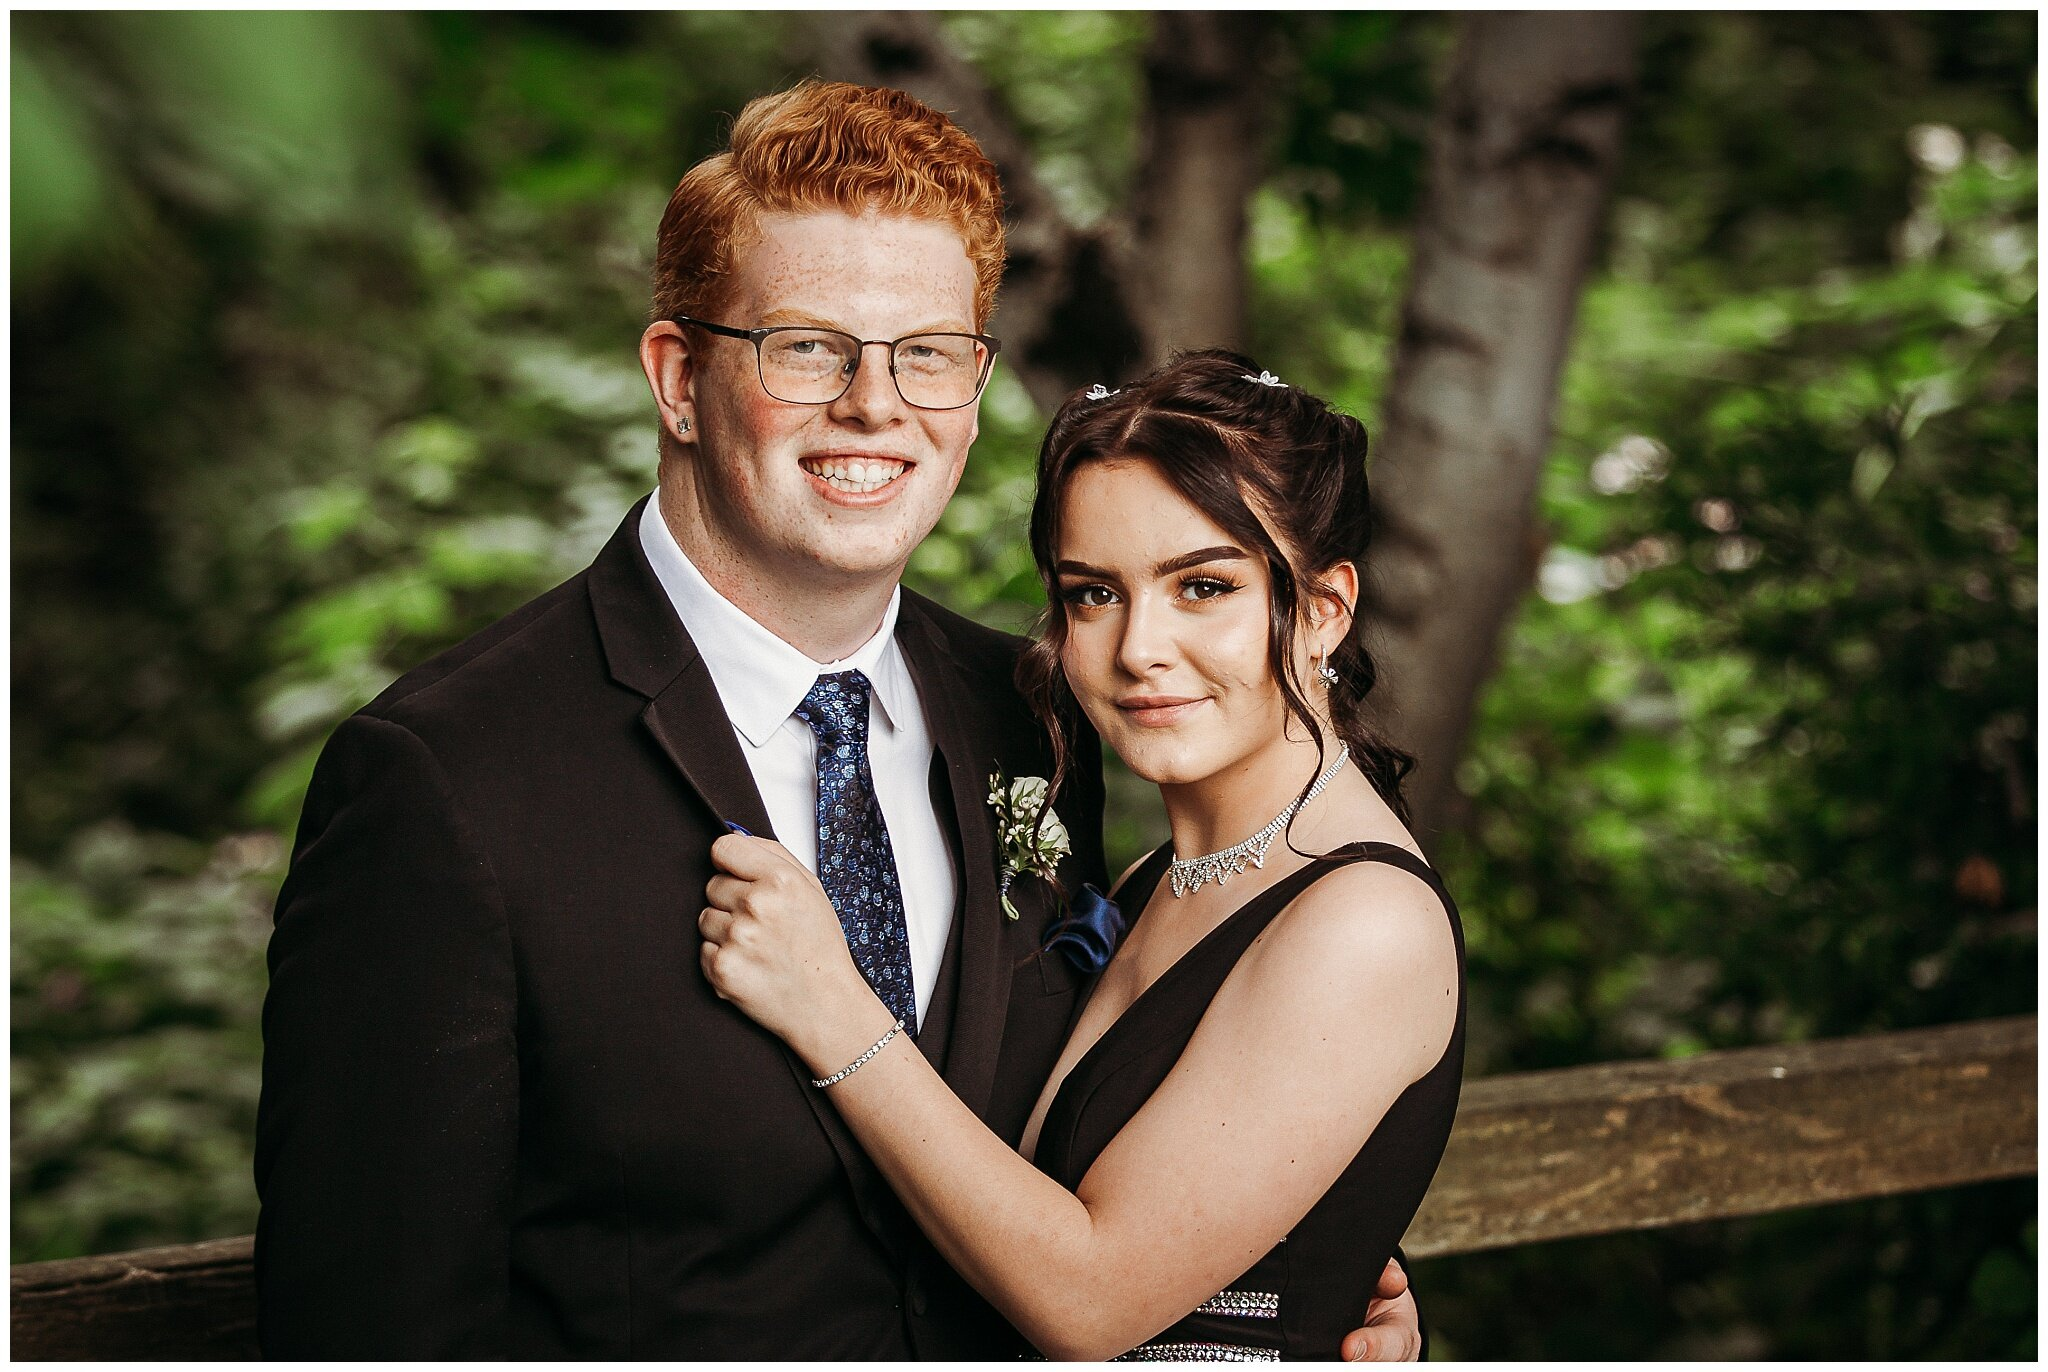 Chilliwack Highschool Prom Graduation Photographer 2019 Abbotsford fun bright_0005.jpg